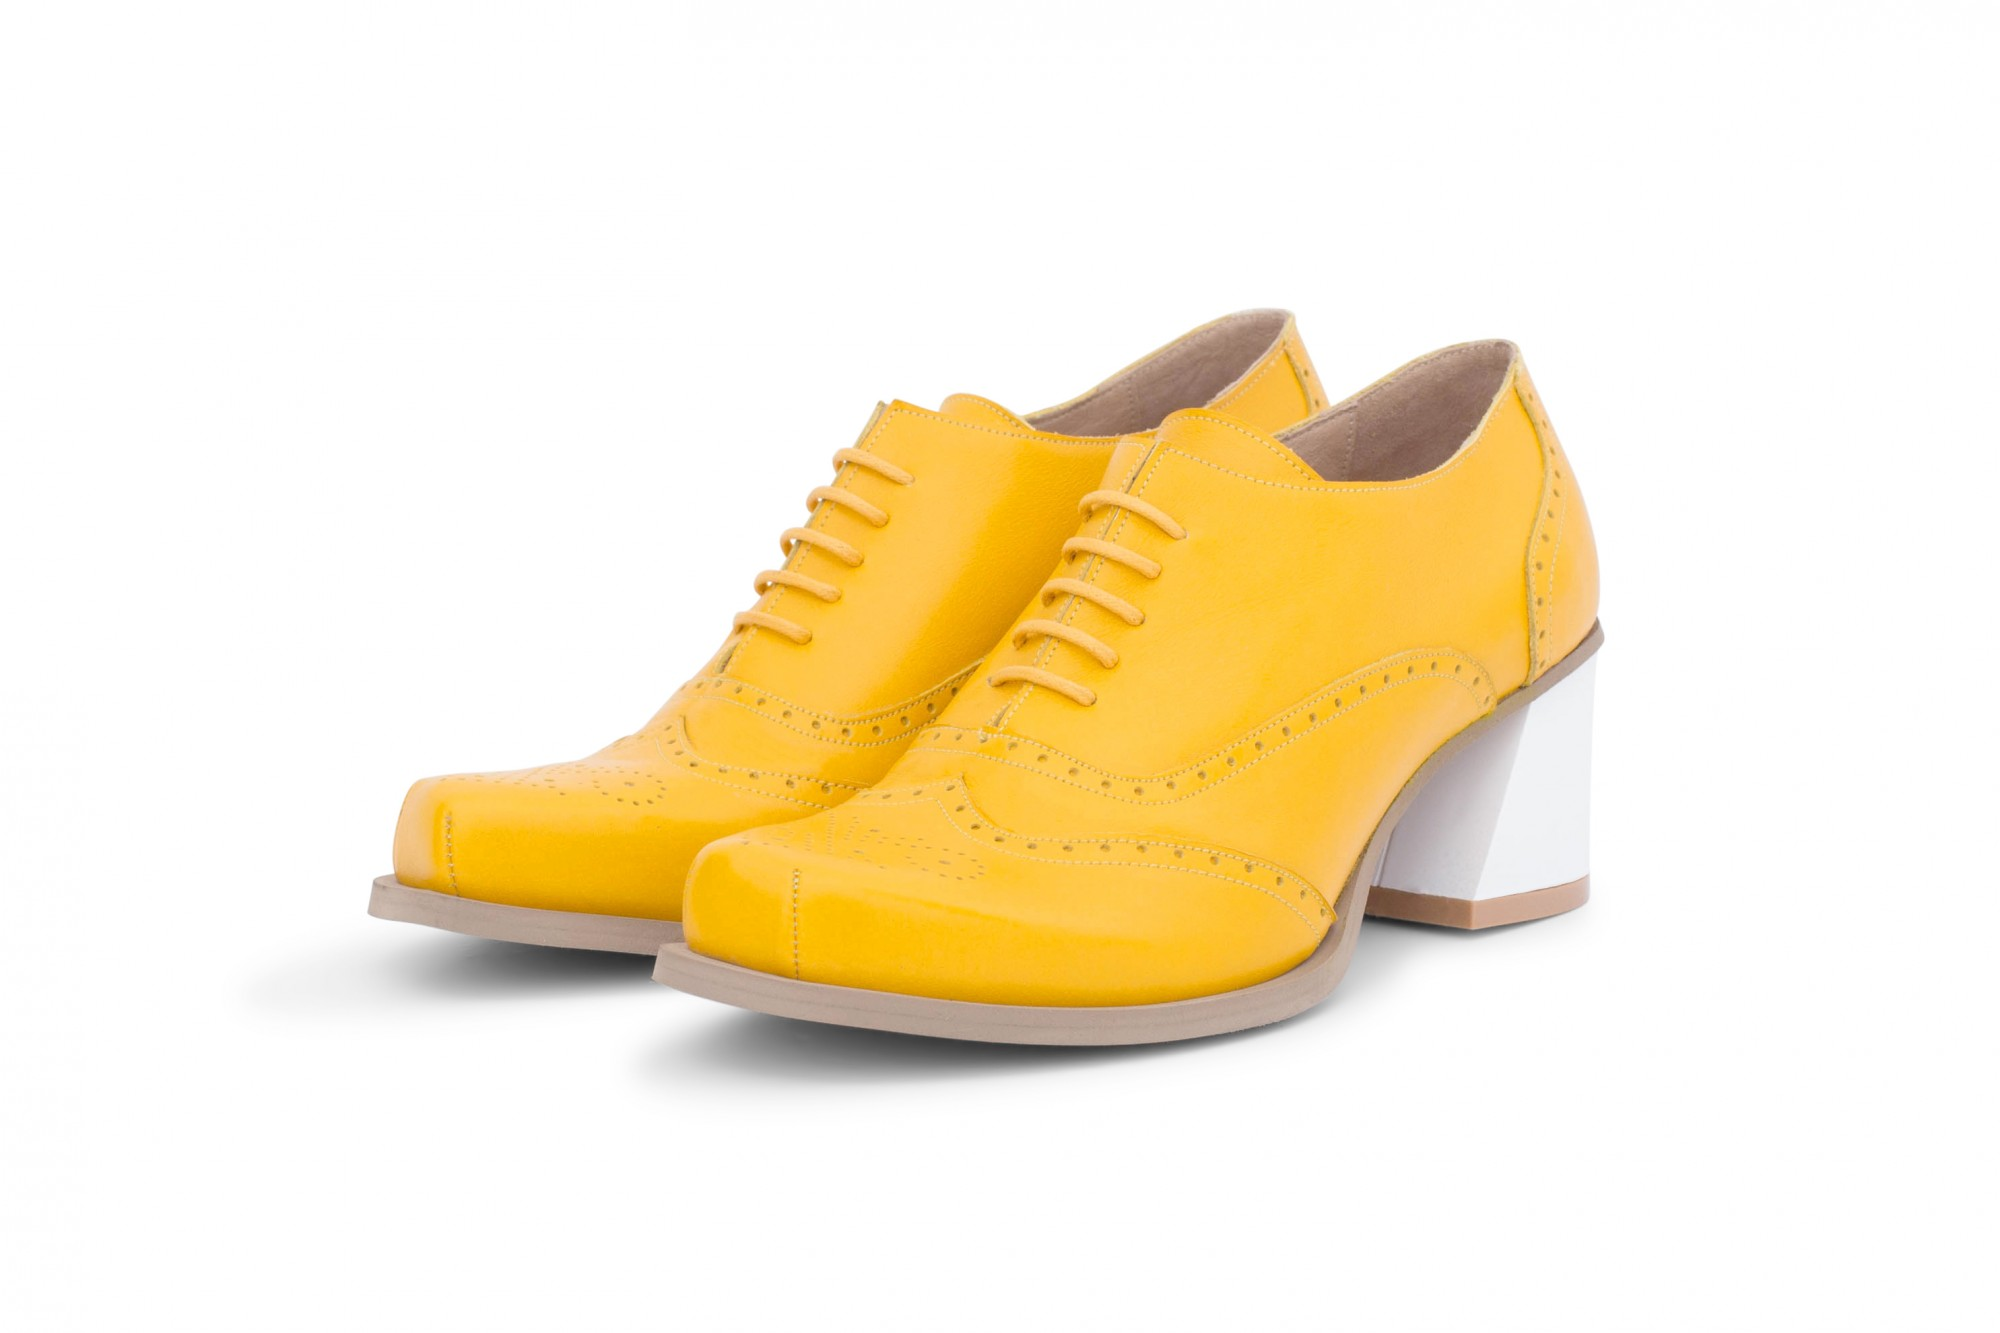 e6aec3eb54 Women S Leather Oxford Shoes Heels - Image Of Shoes